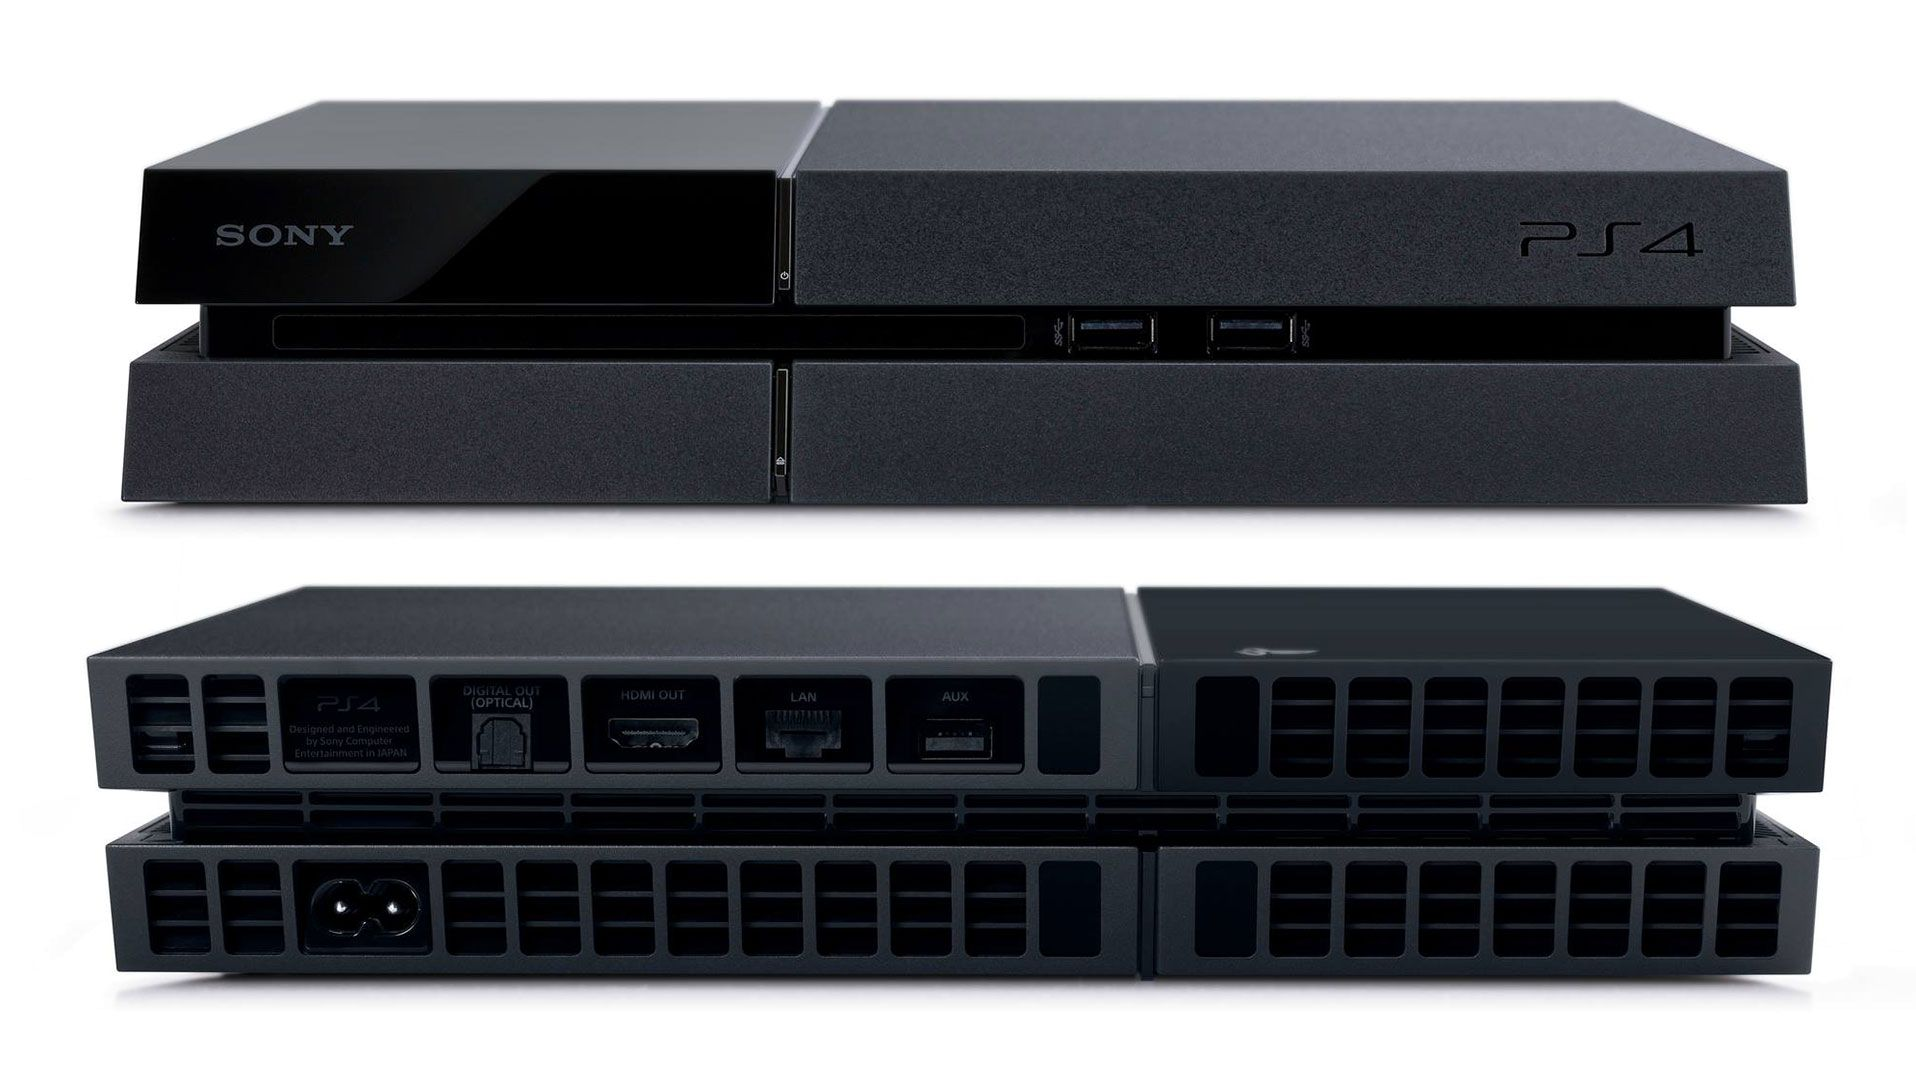 What the front and back of the Ps4 looks like